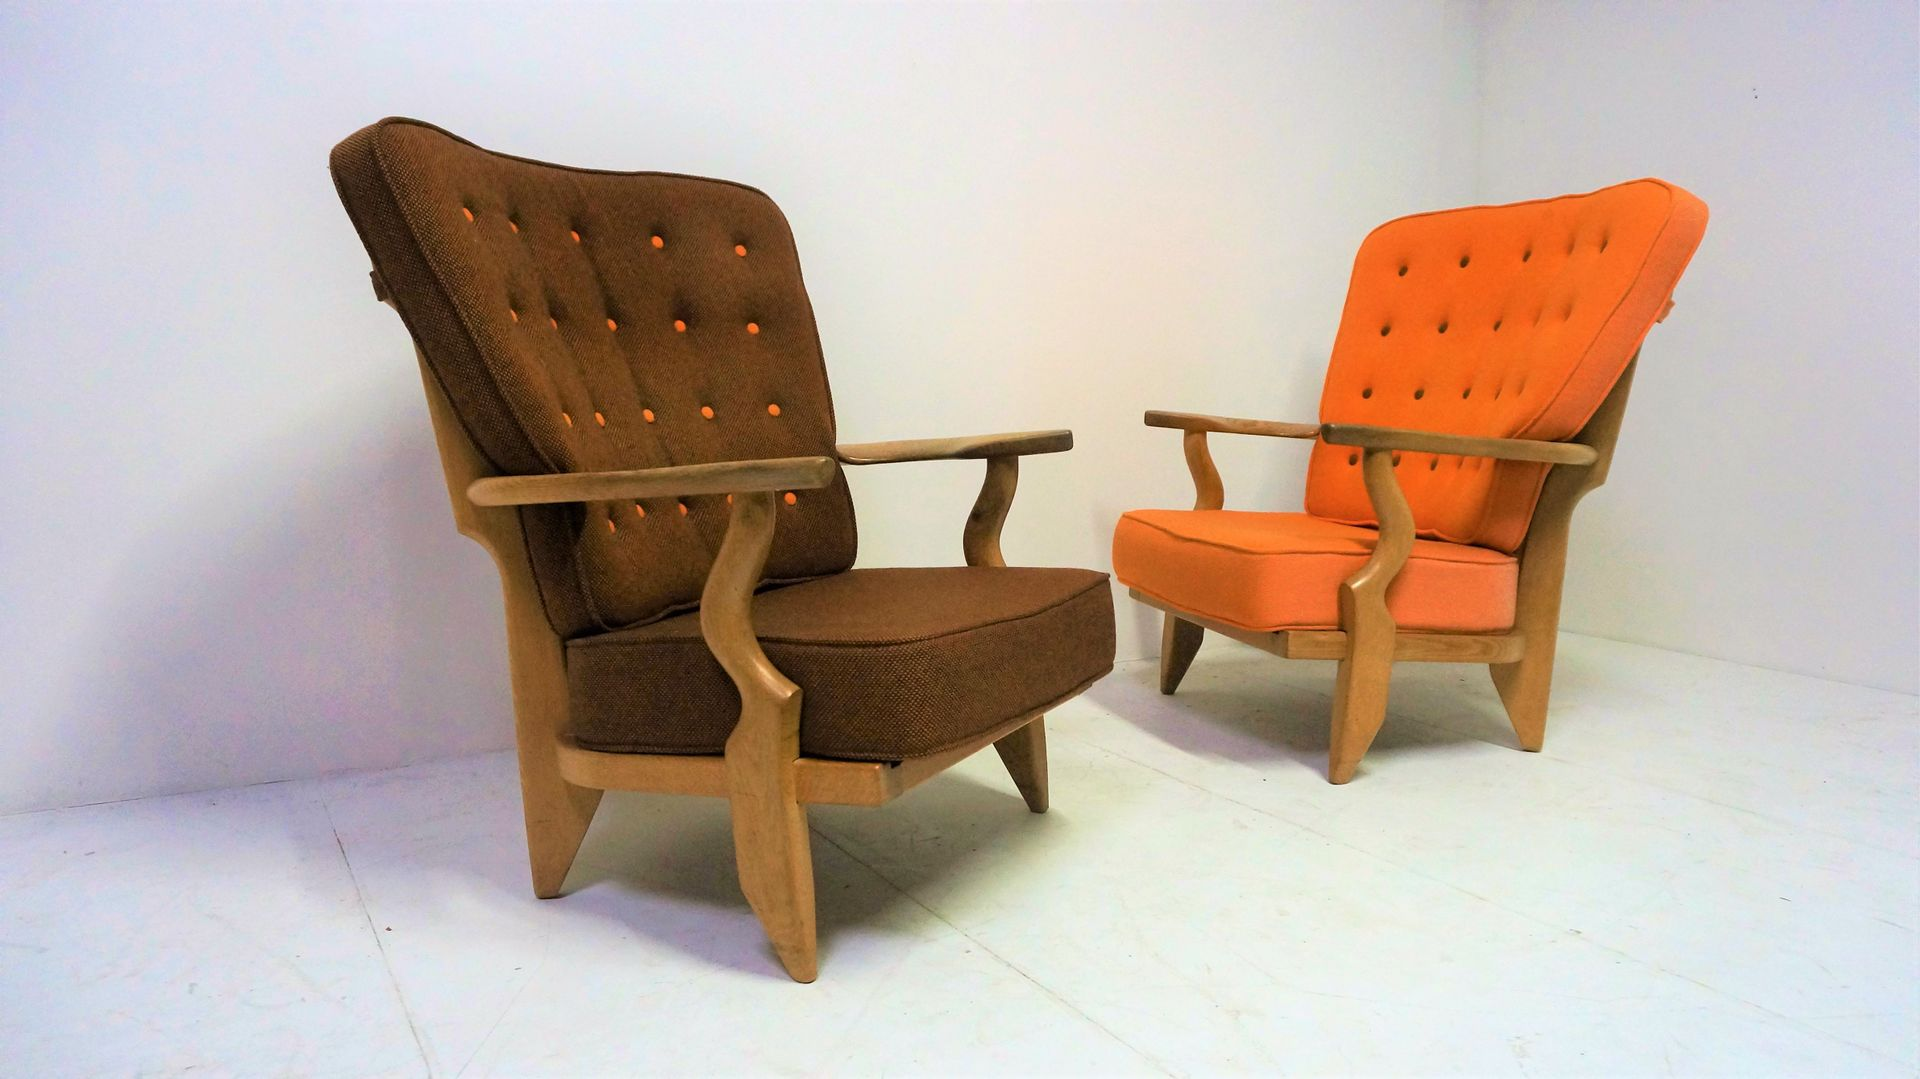 Vintage french lounge chairs by guillerme et chambron for for Vintage parisian lounge